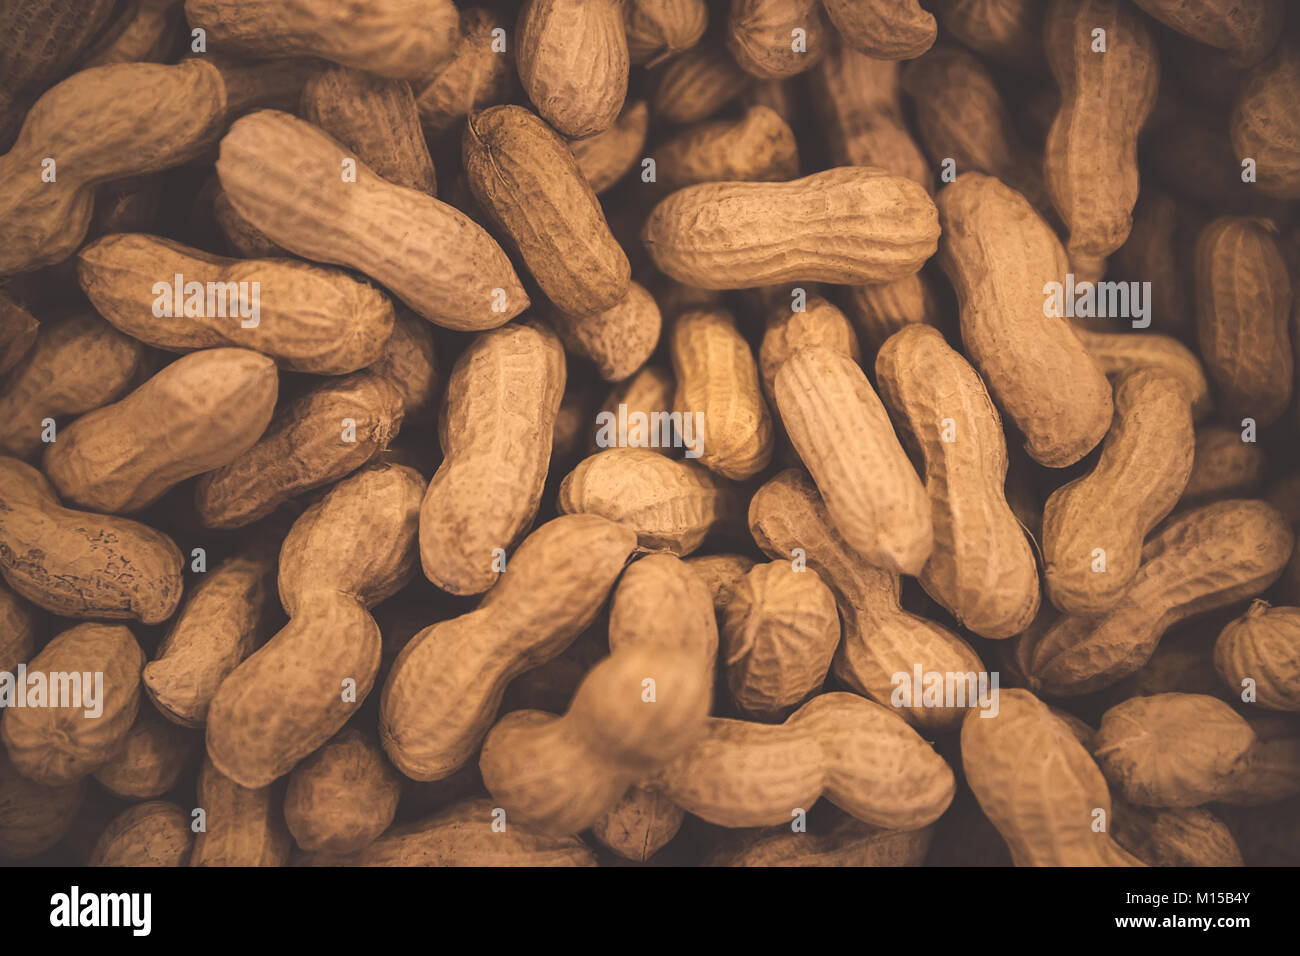 Peanuts background, tasty high-calorie nuts, monkey nuts in the nutshell, abstract groundnuts wallpaper - Stock Image